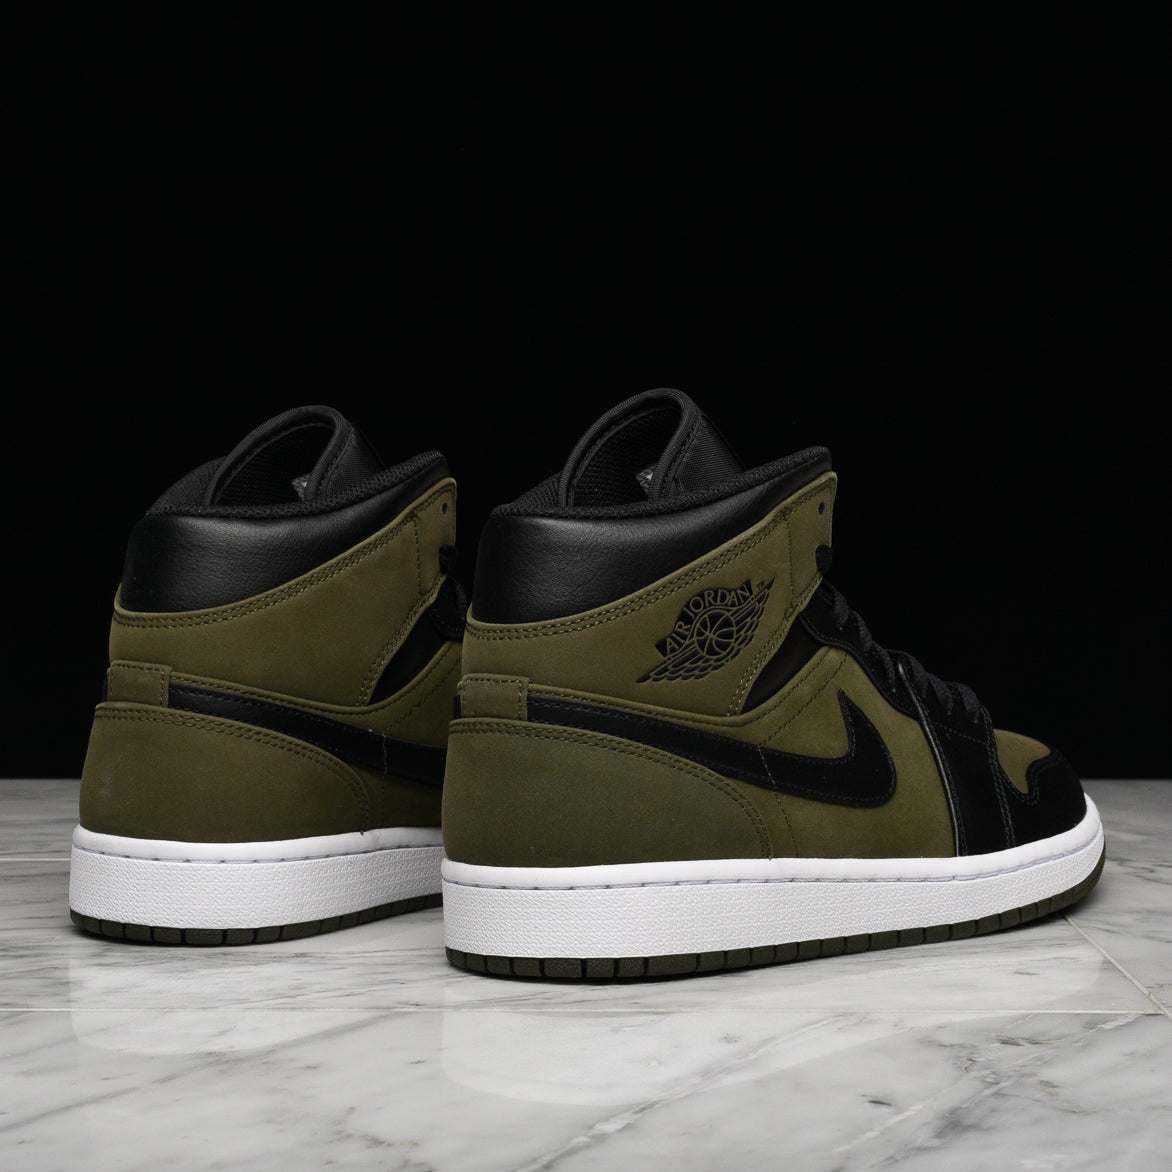 AIR JORDAN 1 MID - OLIVE CANVAS   BLACK. JORDAN 1f094dc6a